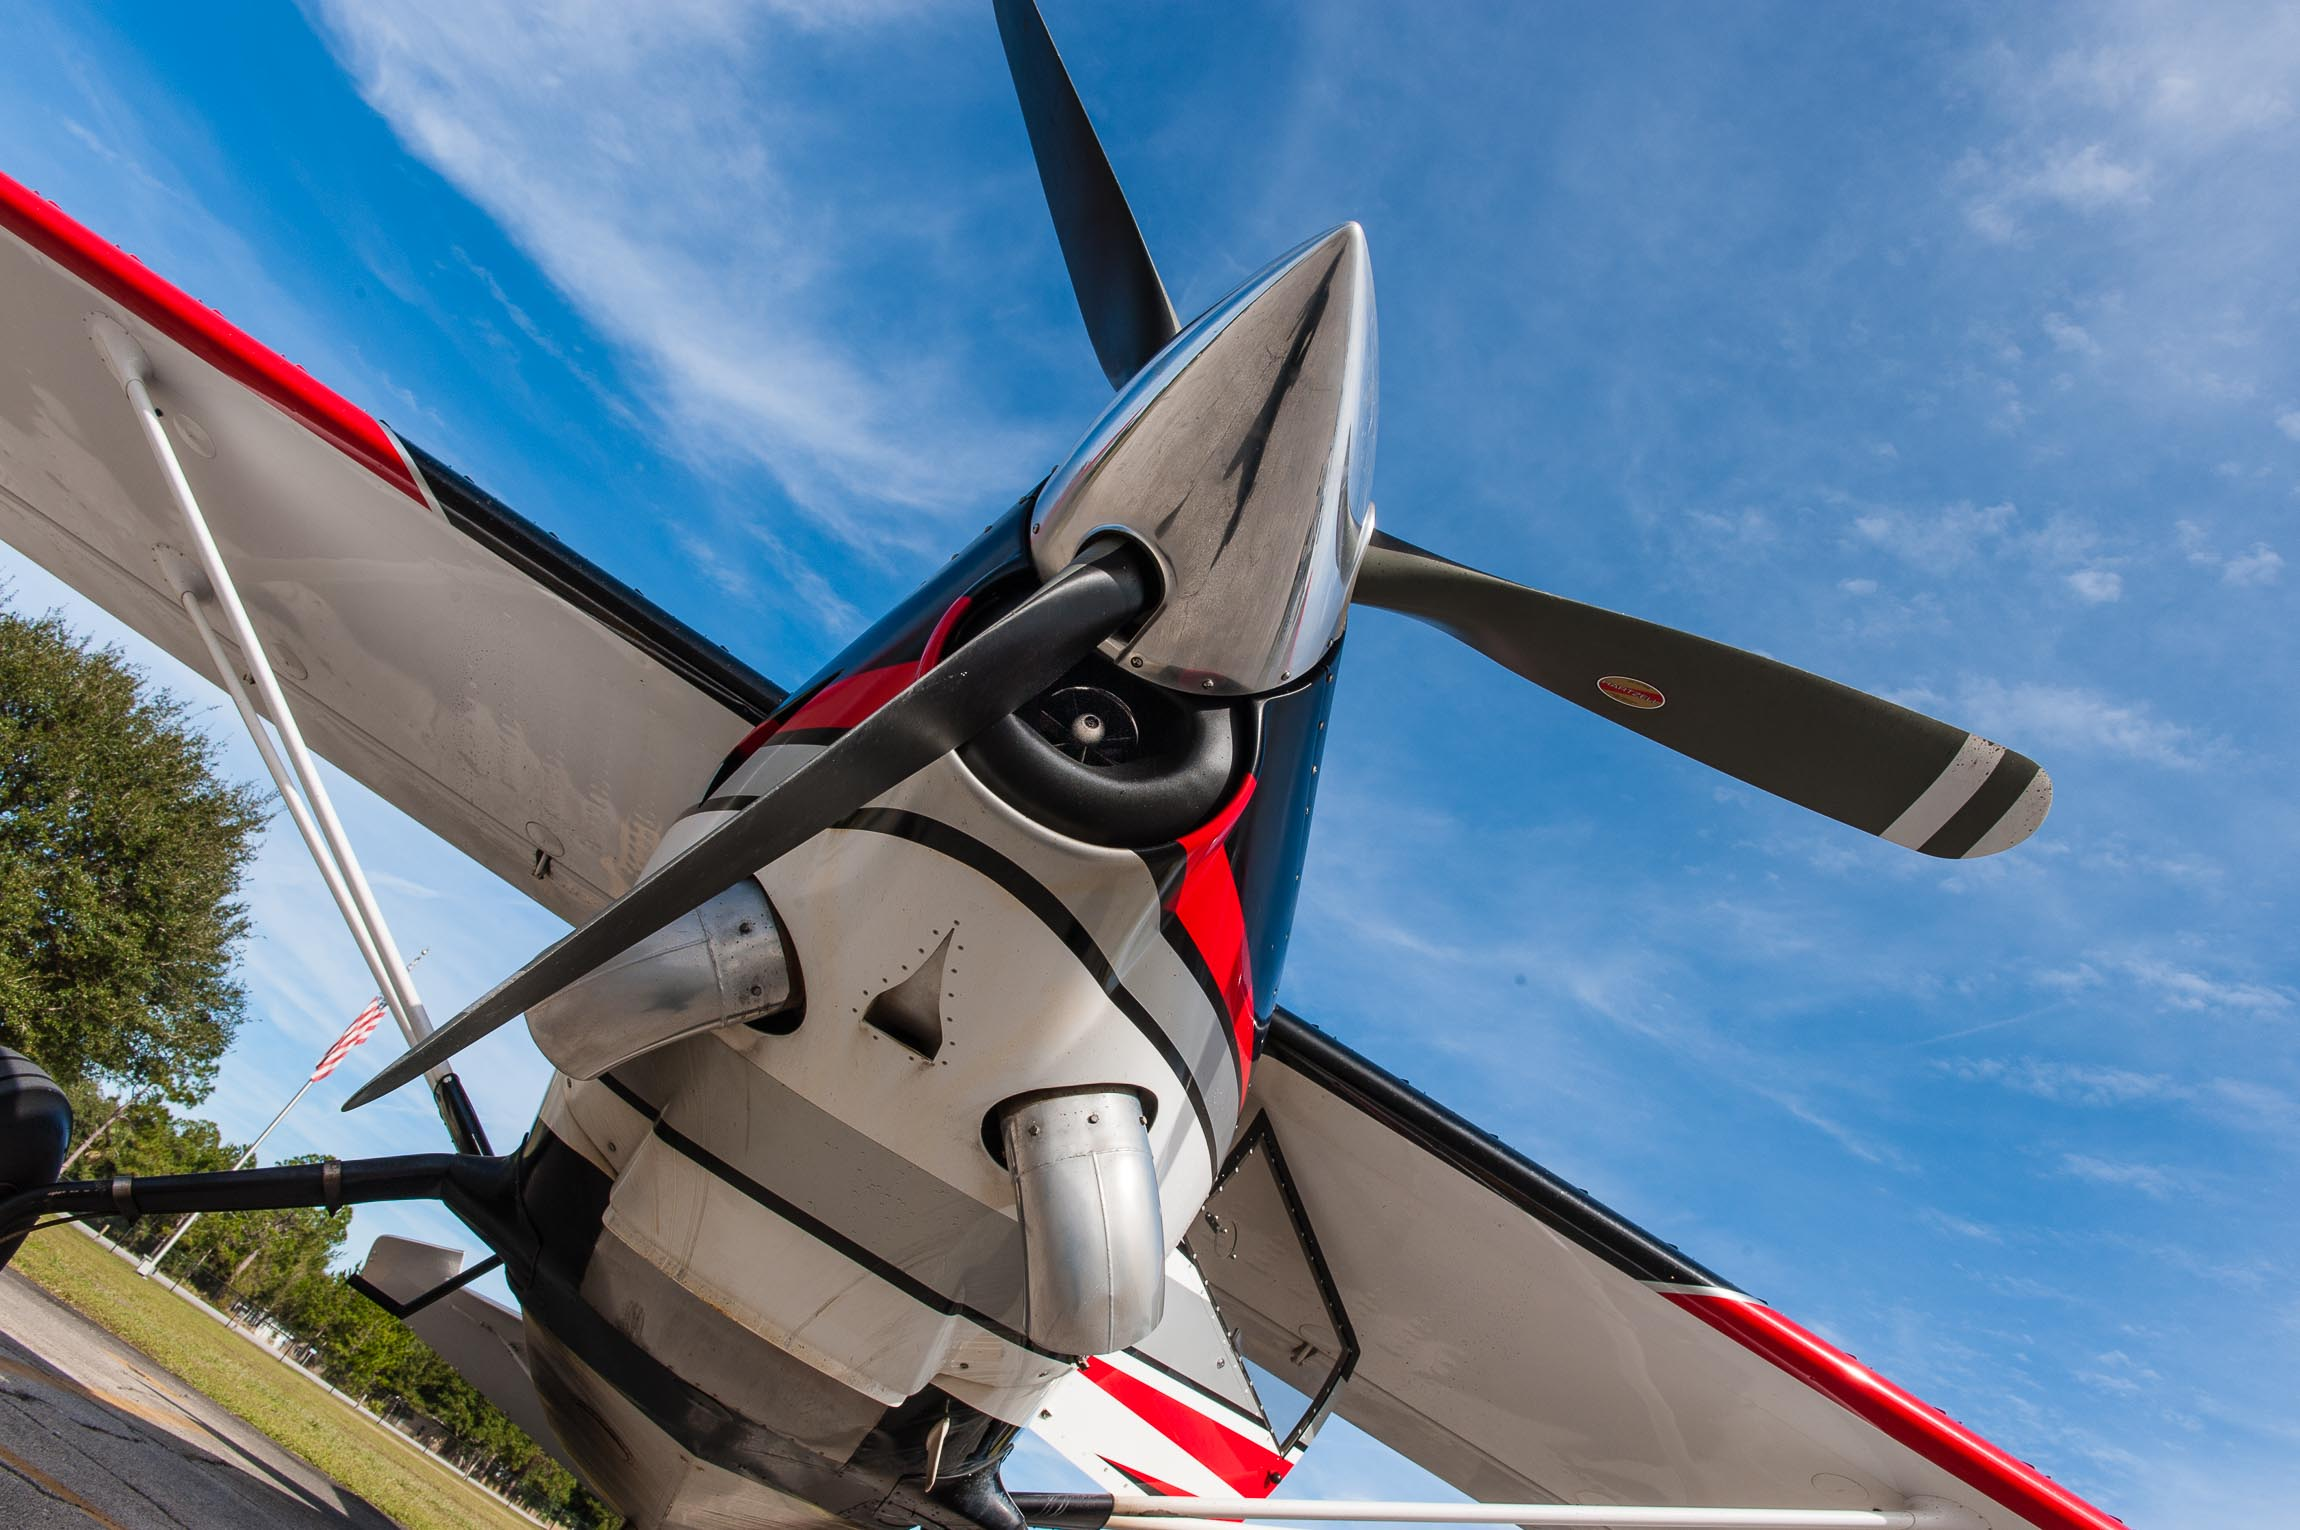 FLYER - The UK's favourite General Aviation magazine